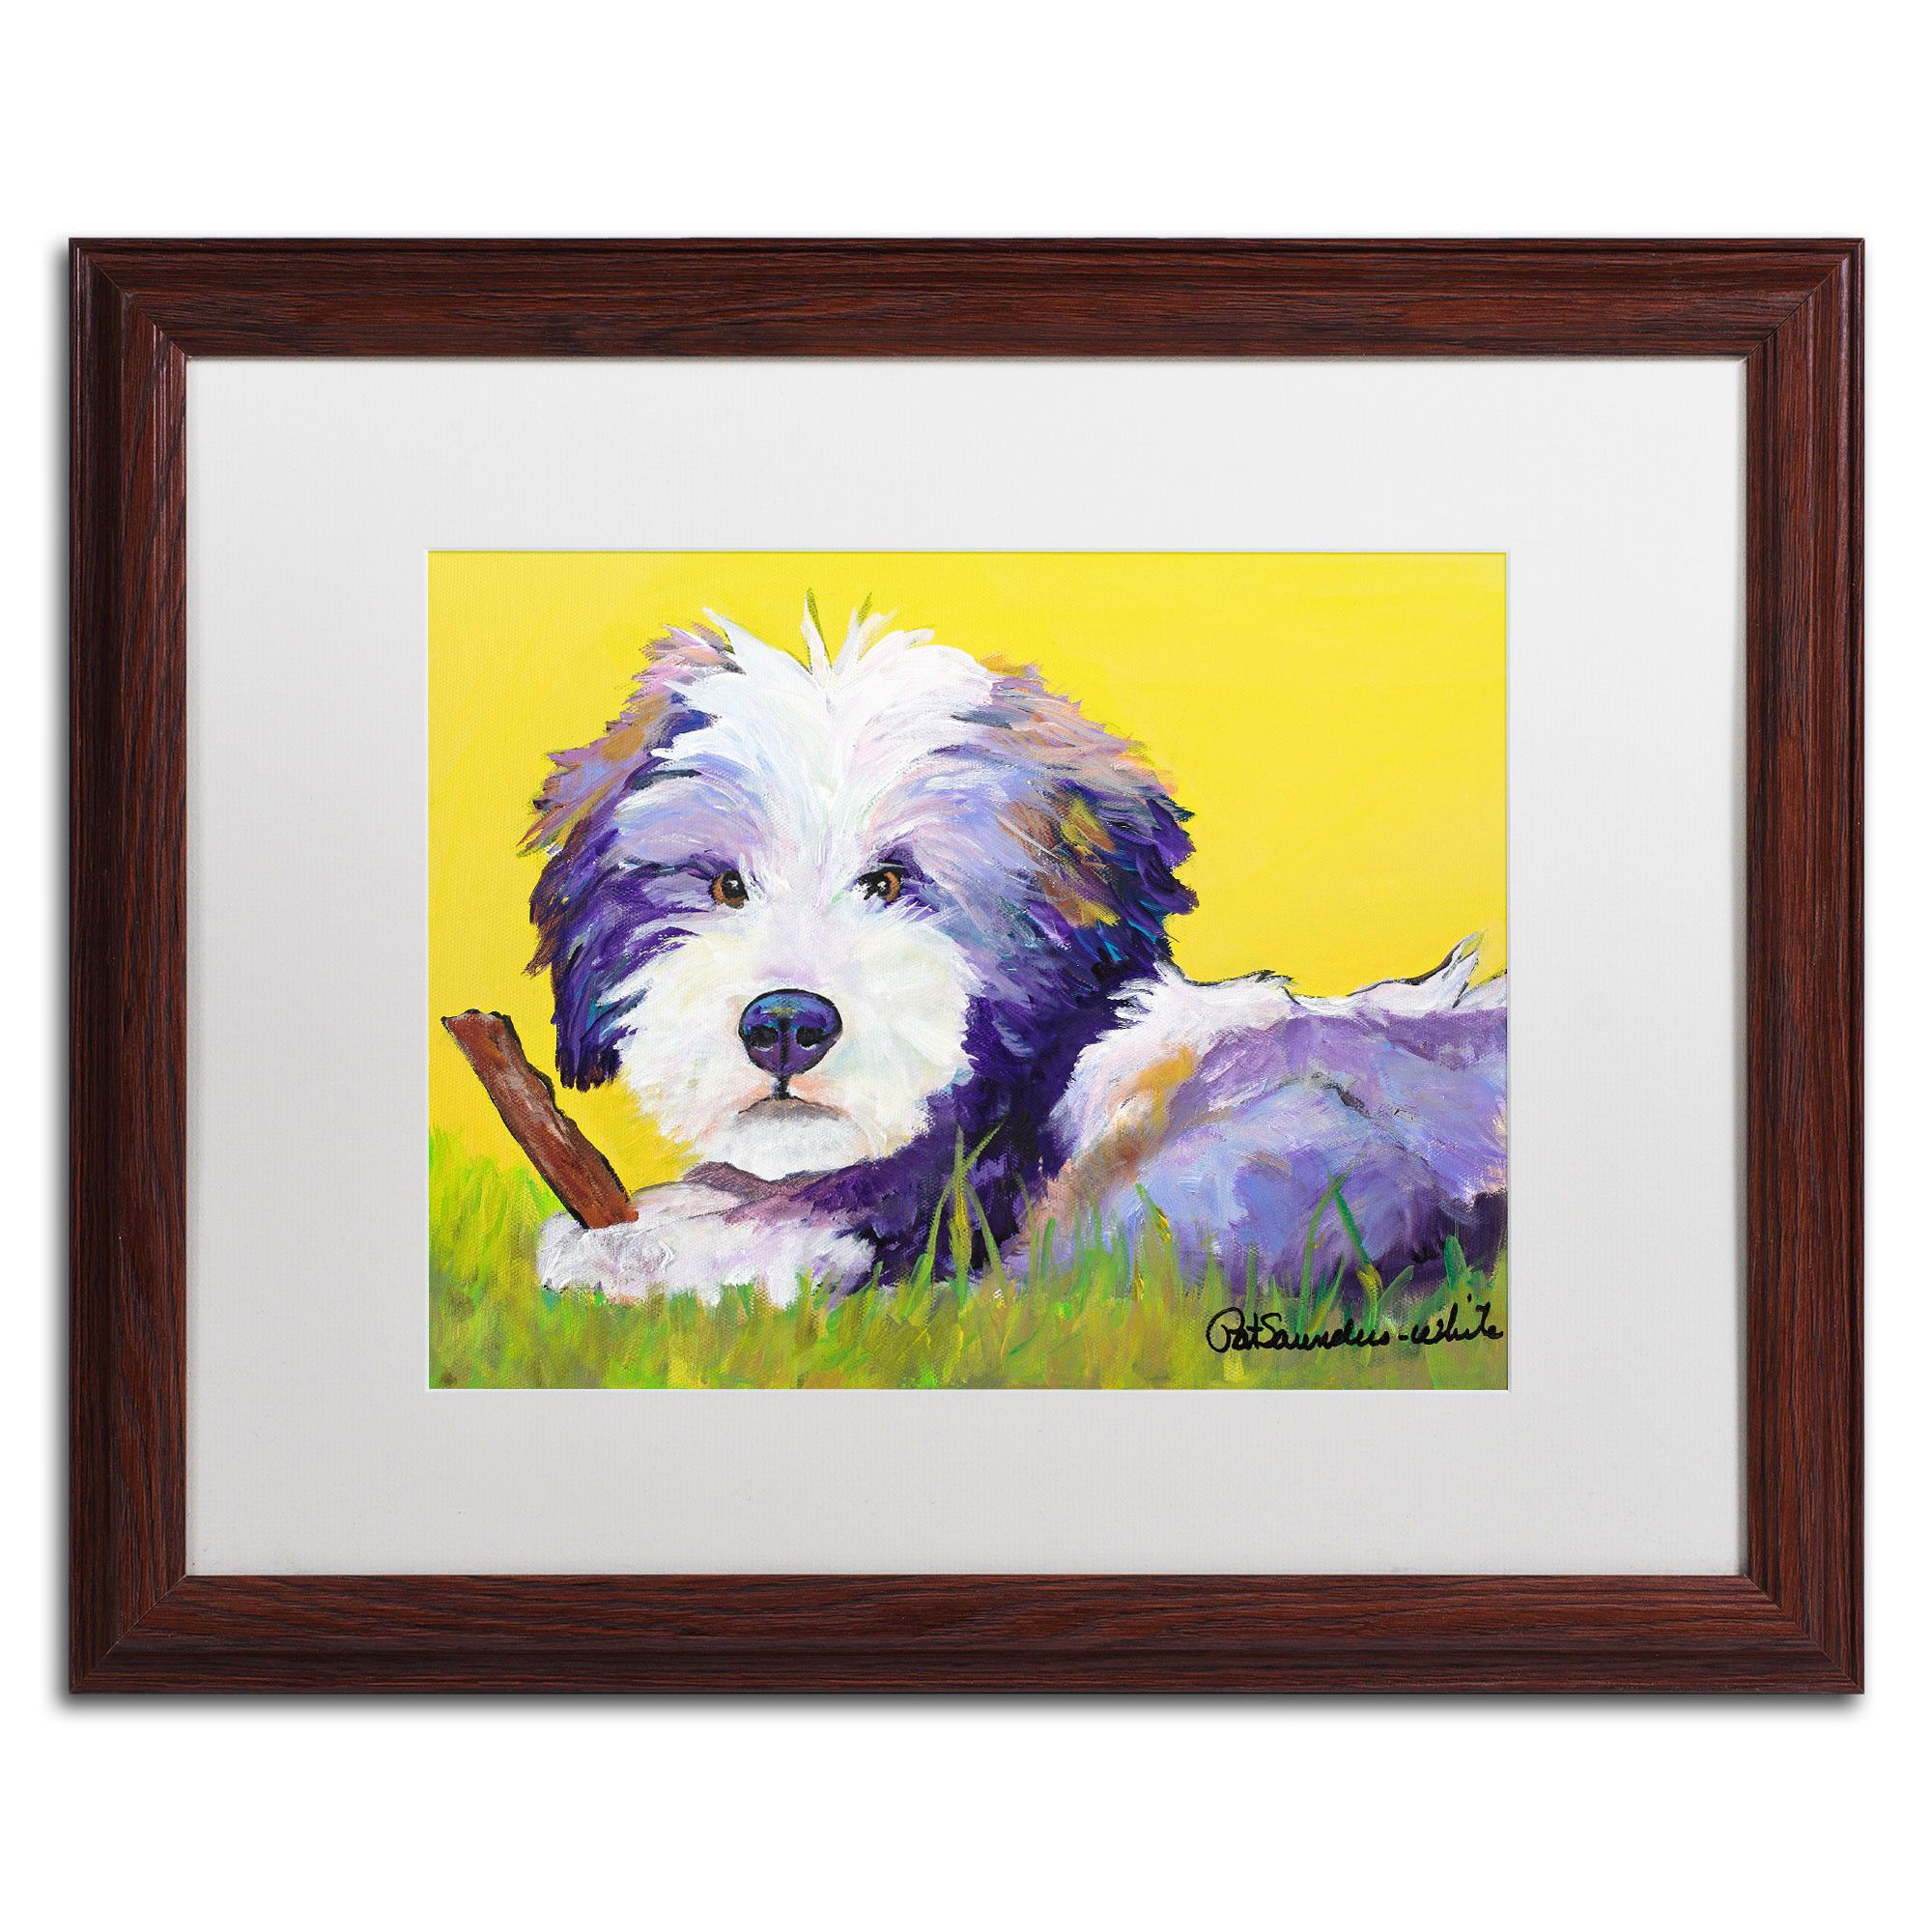 Chew Stick by Pat Saunders-White Framed Painting Print